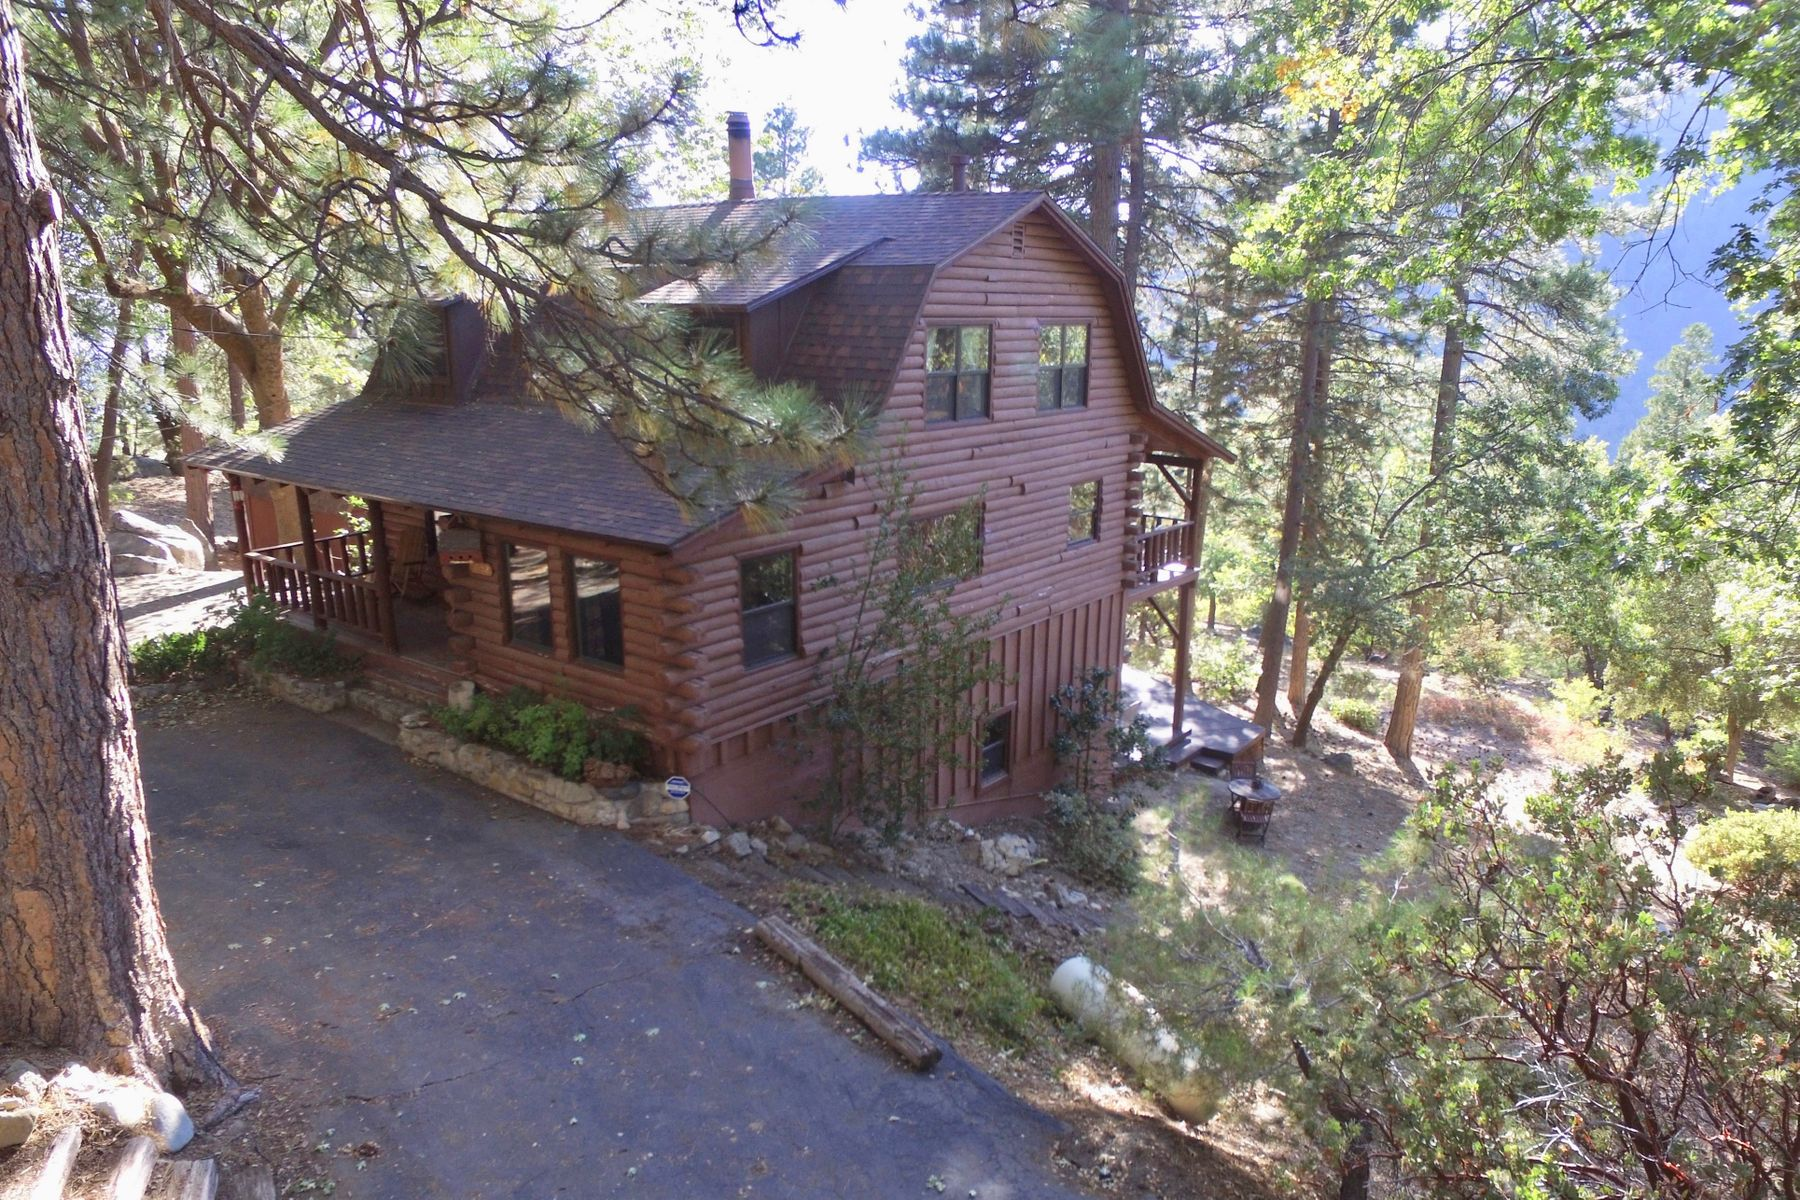 Single Family Homes for Sale at Unique Log Cabin in Wooded Hillside 6452 Cedar Avenue Angelus Oaks, California 92305 United States